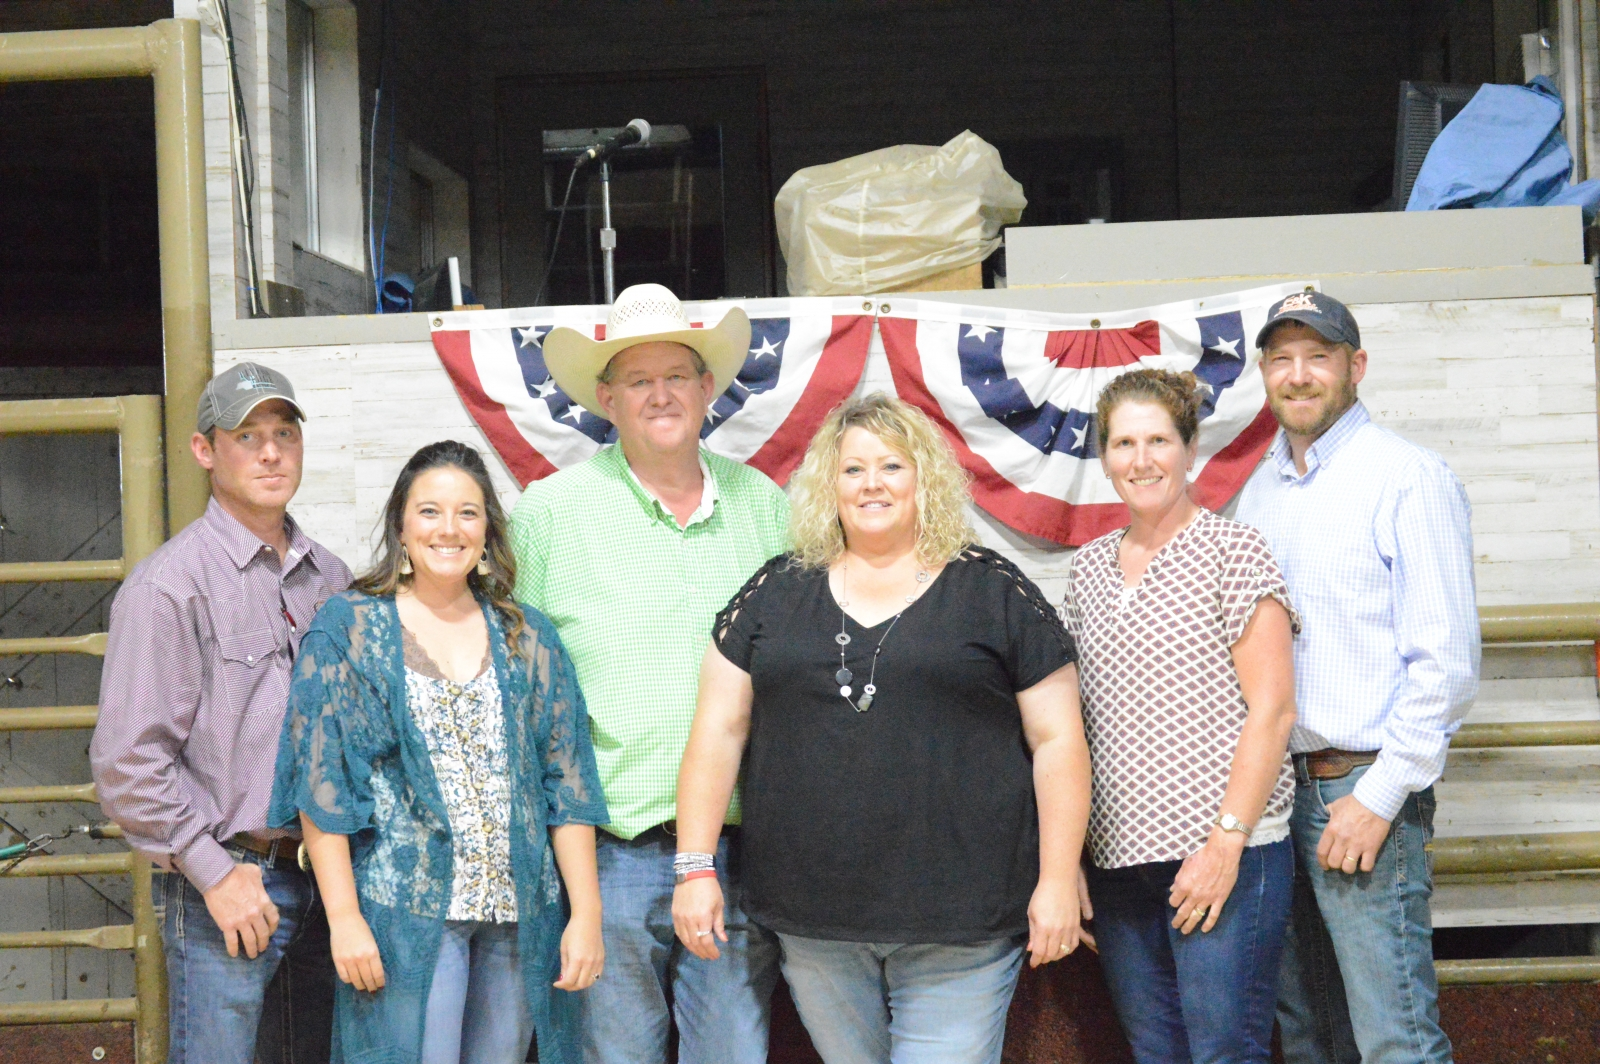 The new owners of Gordon Livestock stand from left to right: Jarrod & Paula Anderson, Tom & Patsy Tines, and Eric & Kate Popkes.